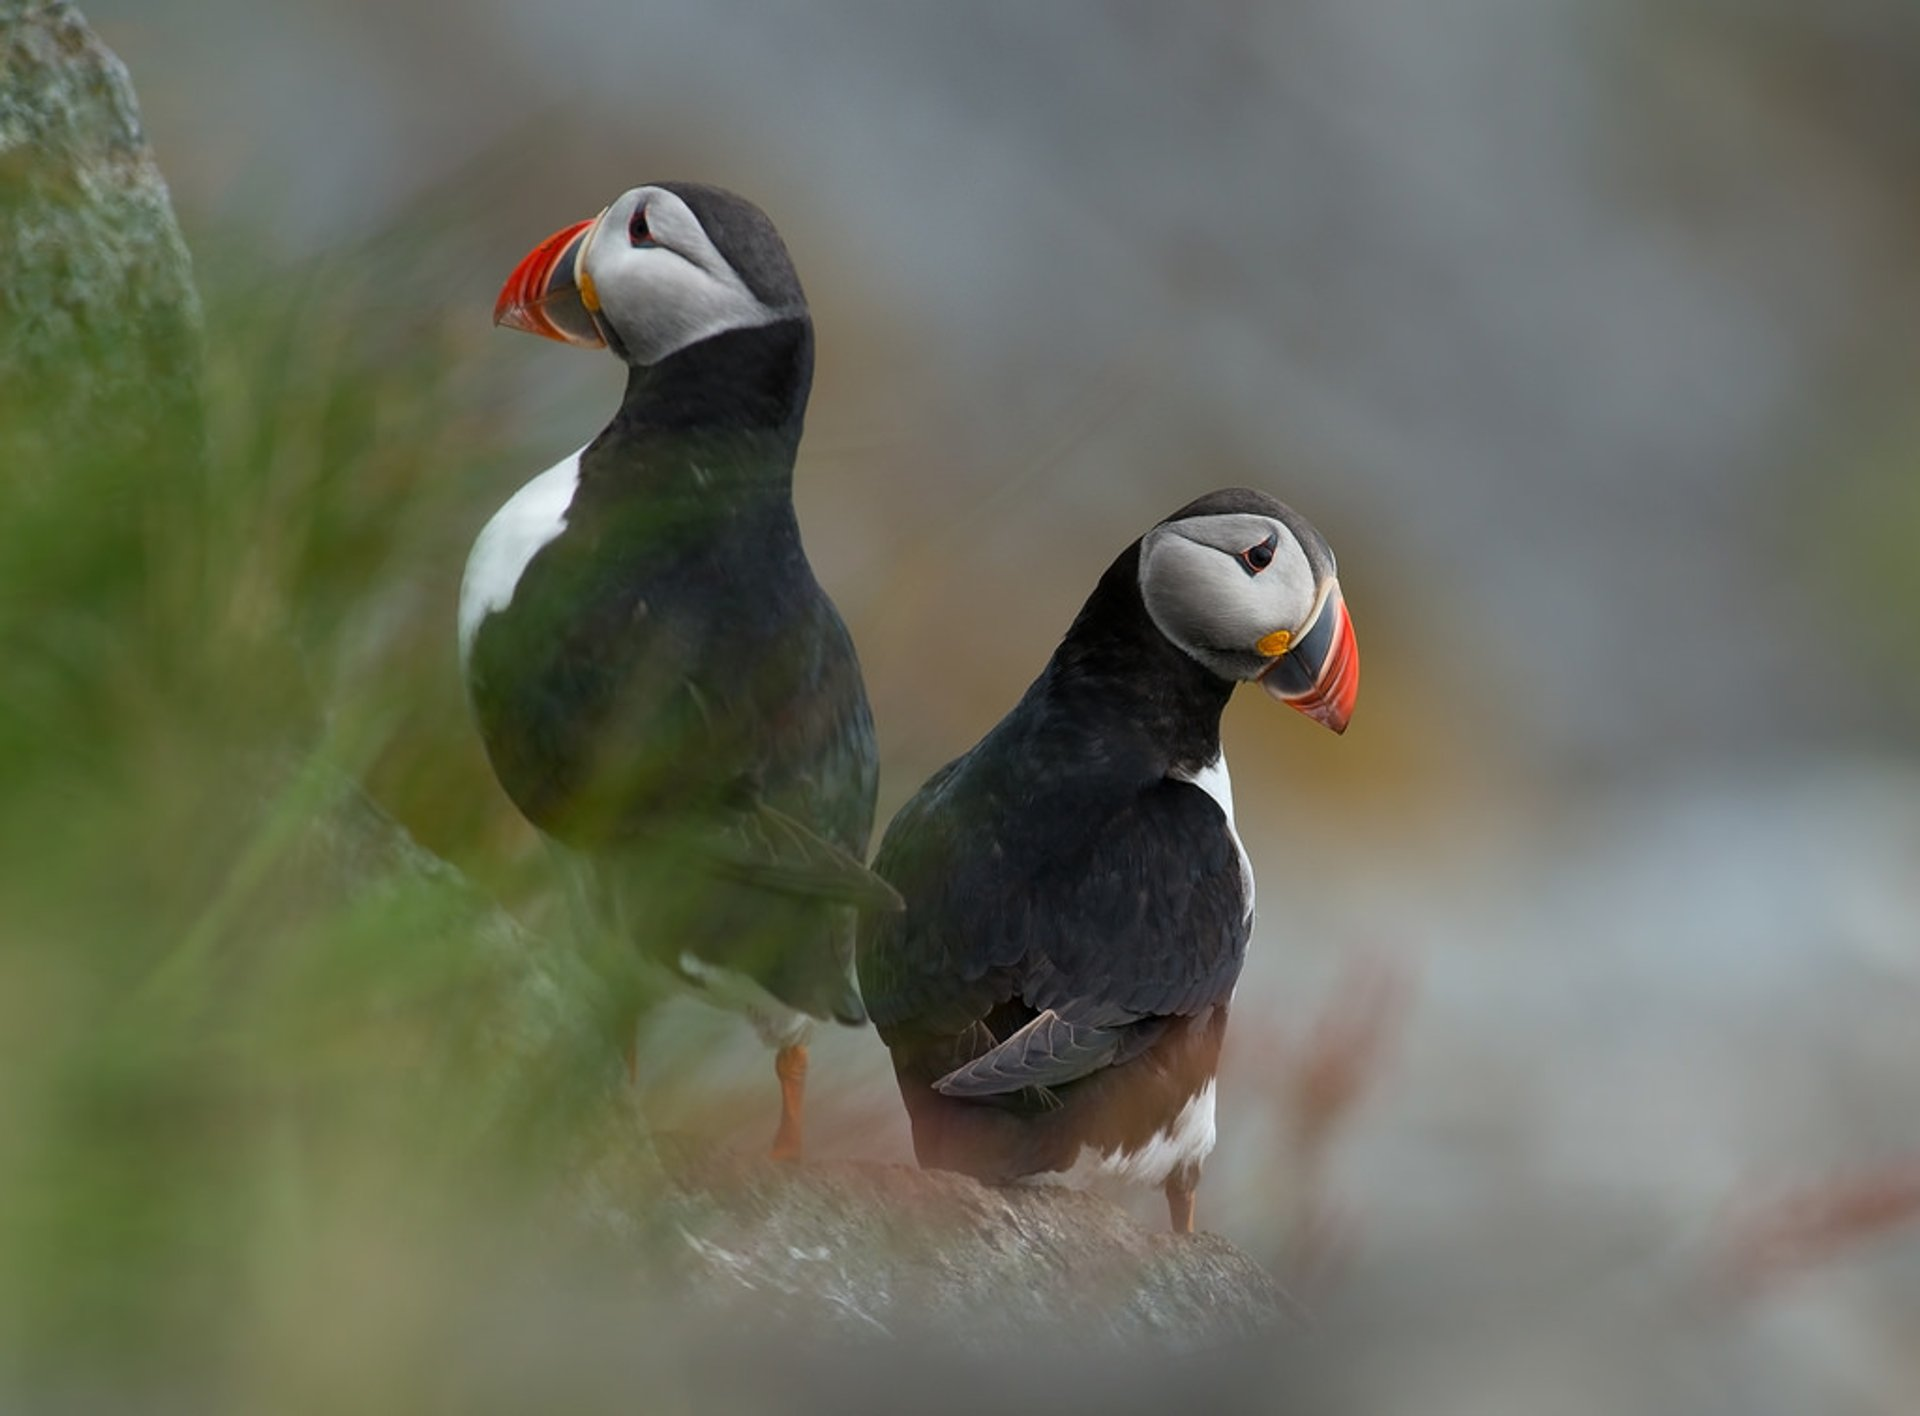 Atlantic Puffins in Karmøy, Norway 2020